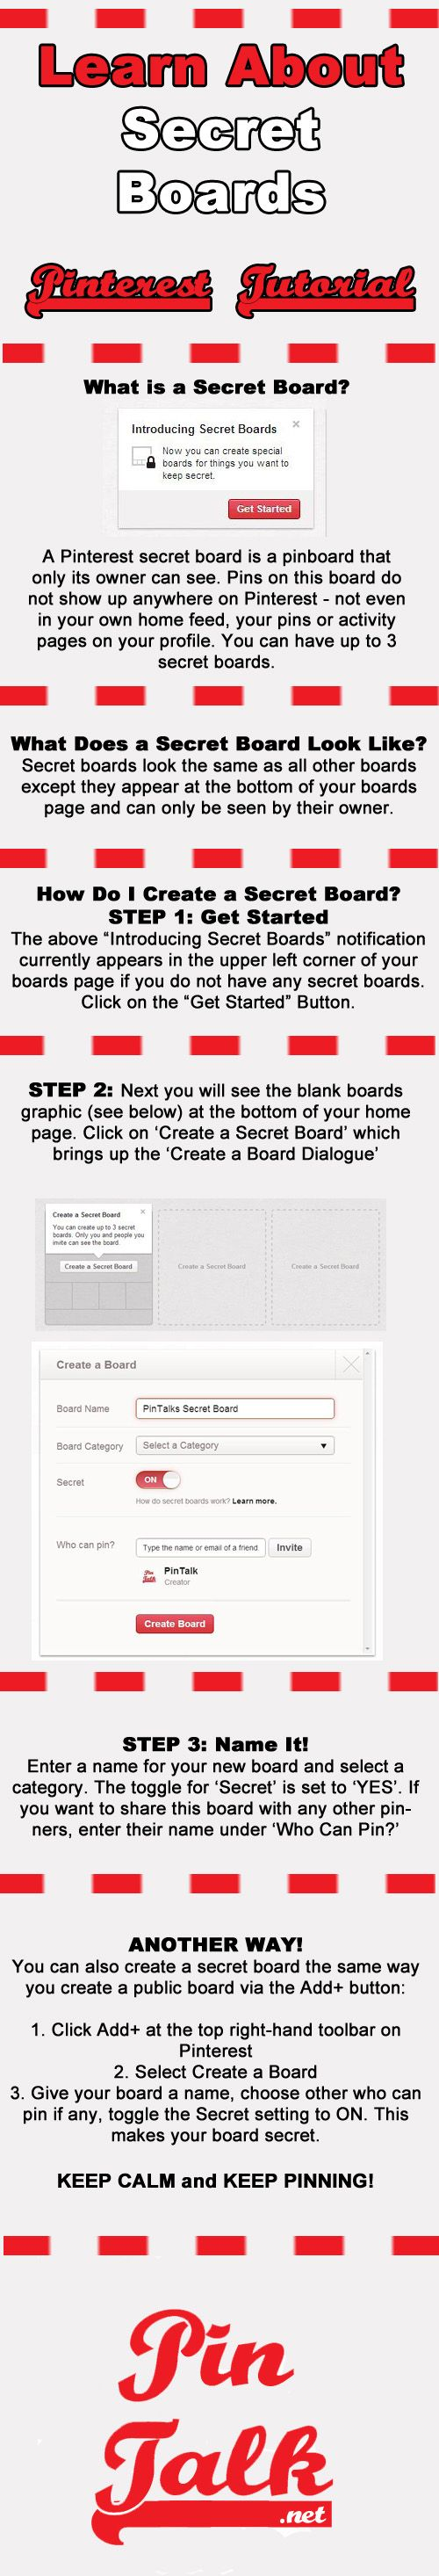 Pinterest Secret Boards Tutorial Getting Rid Of A Blank Page In Word How To  Delete